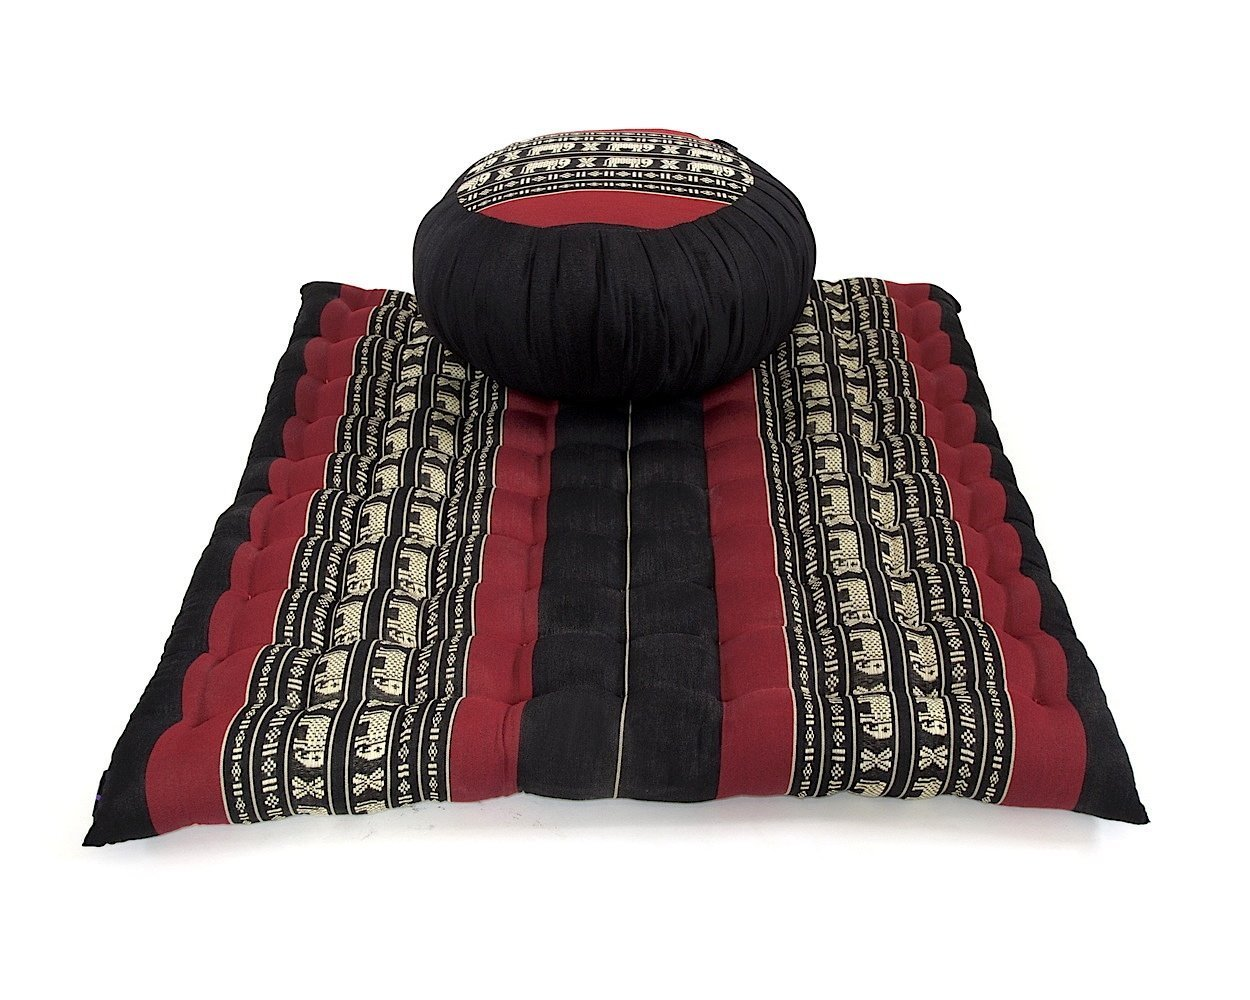 Design by UnseenThailand Meditation Set: Zafu Cushion, Zabuton Mat, Kapok Fabric, 30x28x10 inches. (Black - Red) by UnseenThailand Warehouse